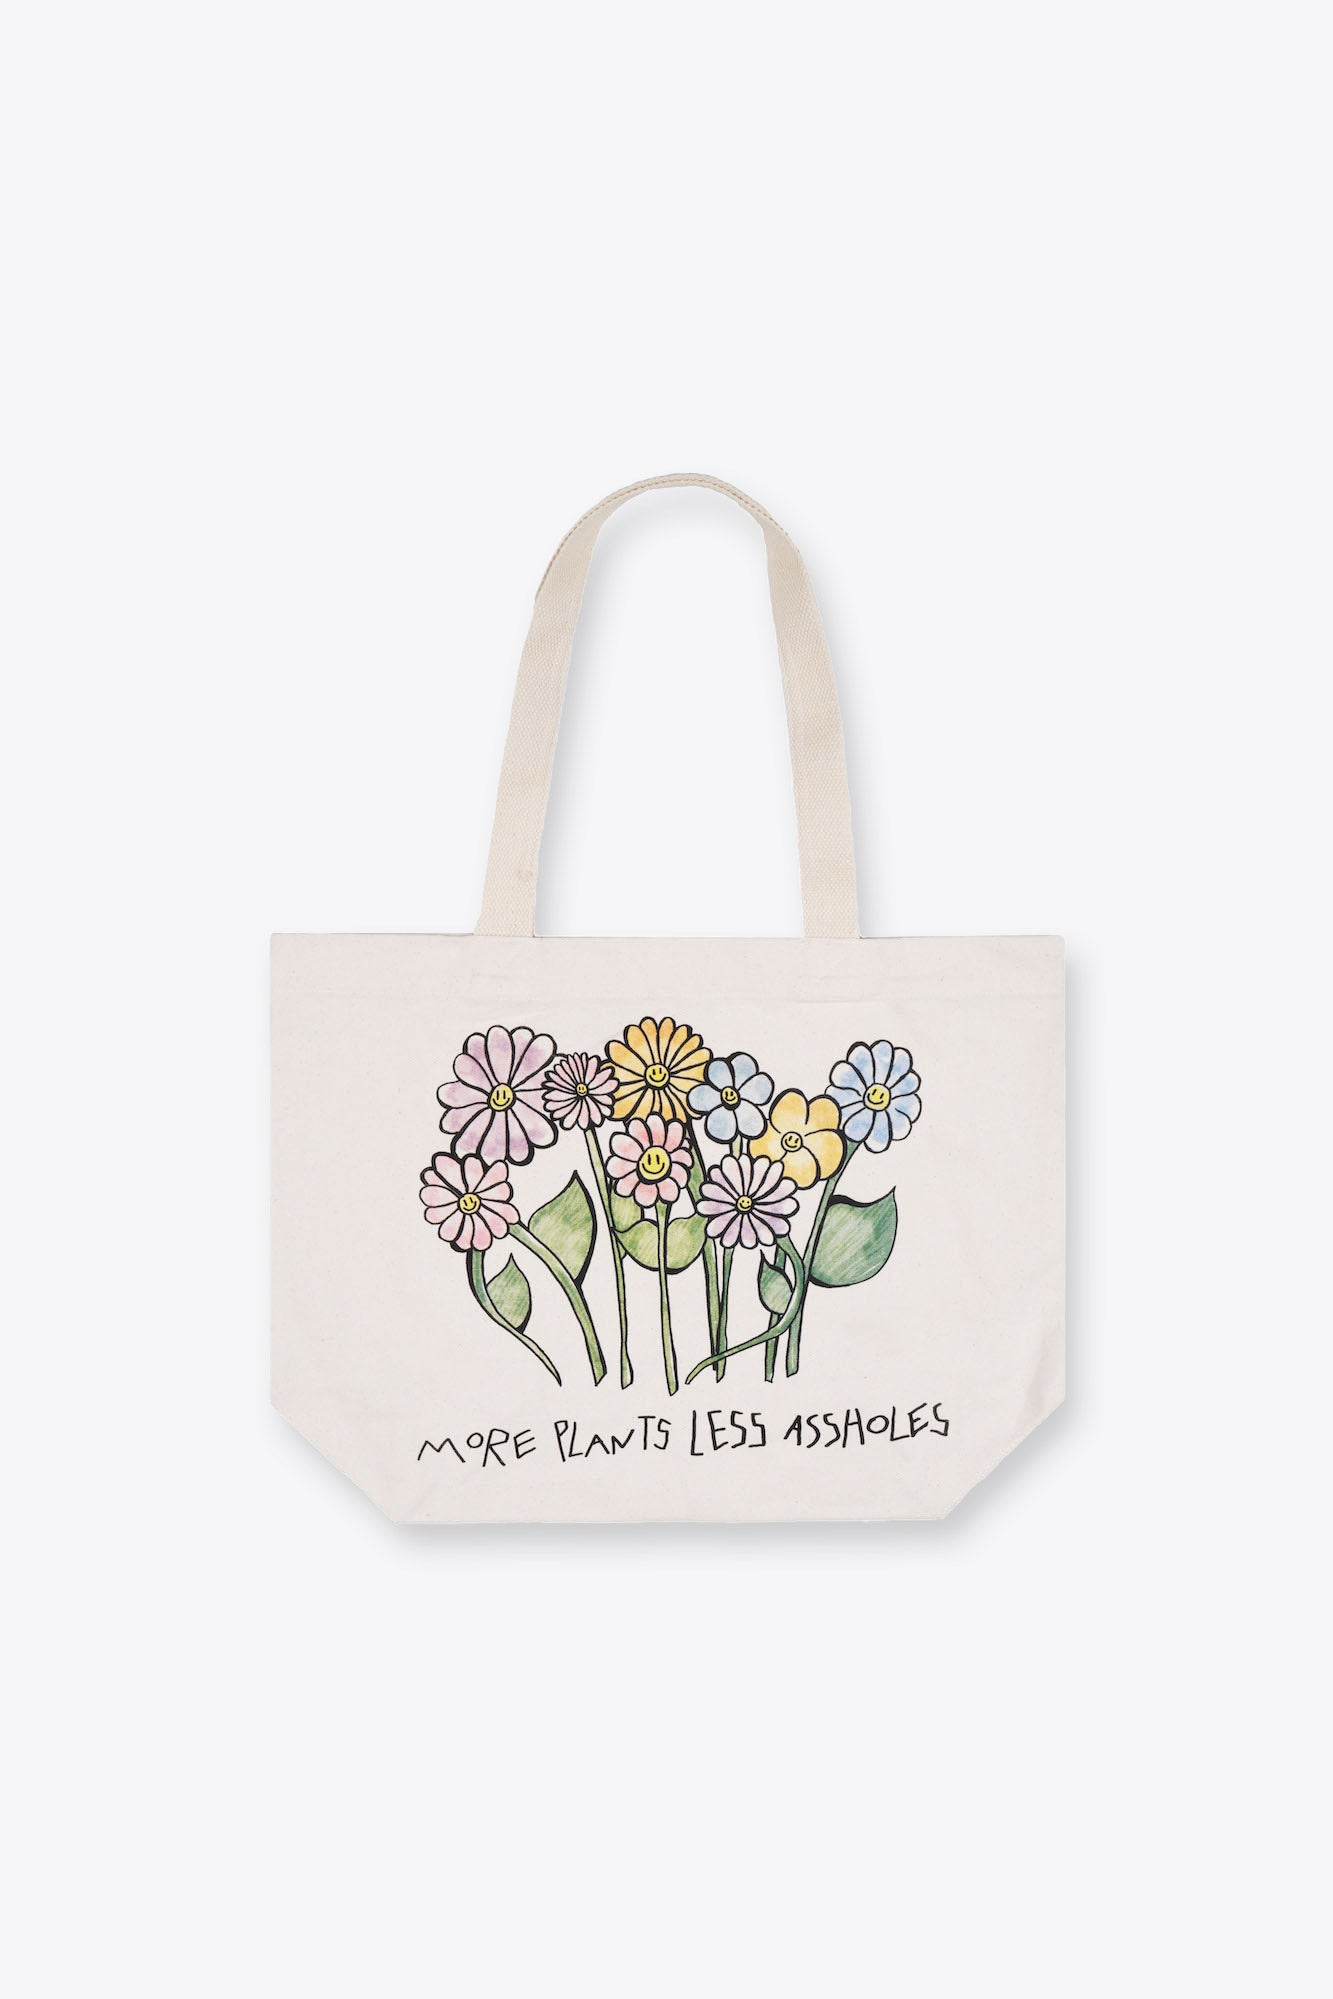 More Plants Less Assholes Tote Bag